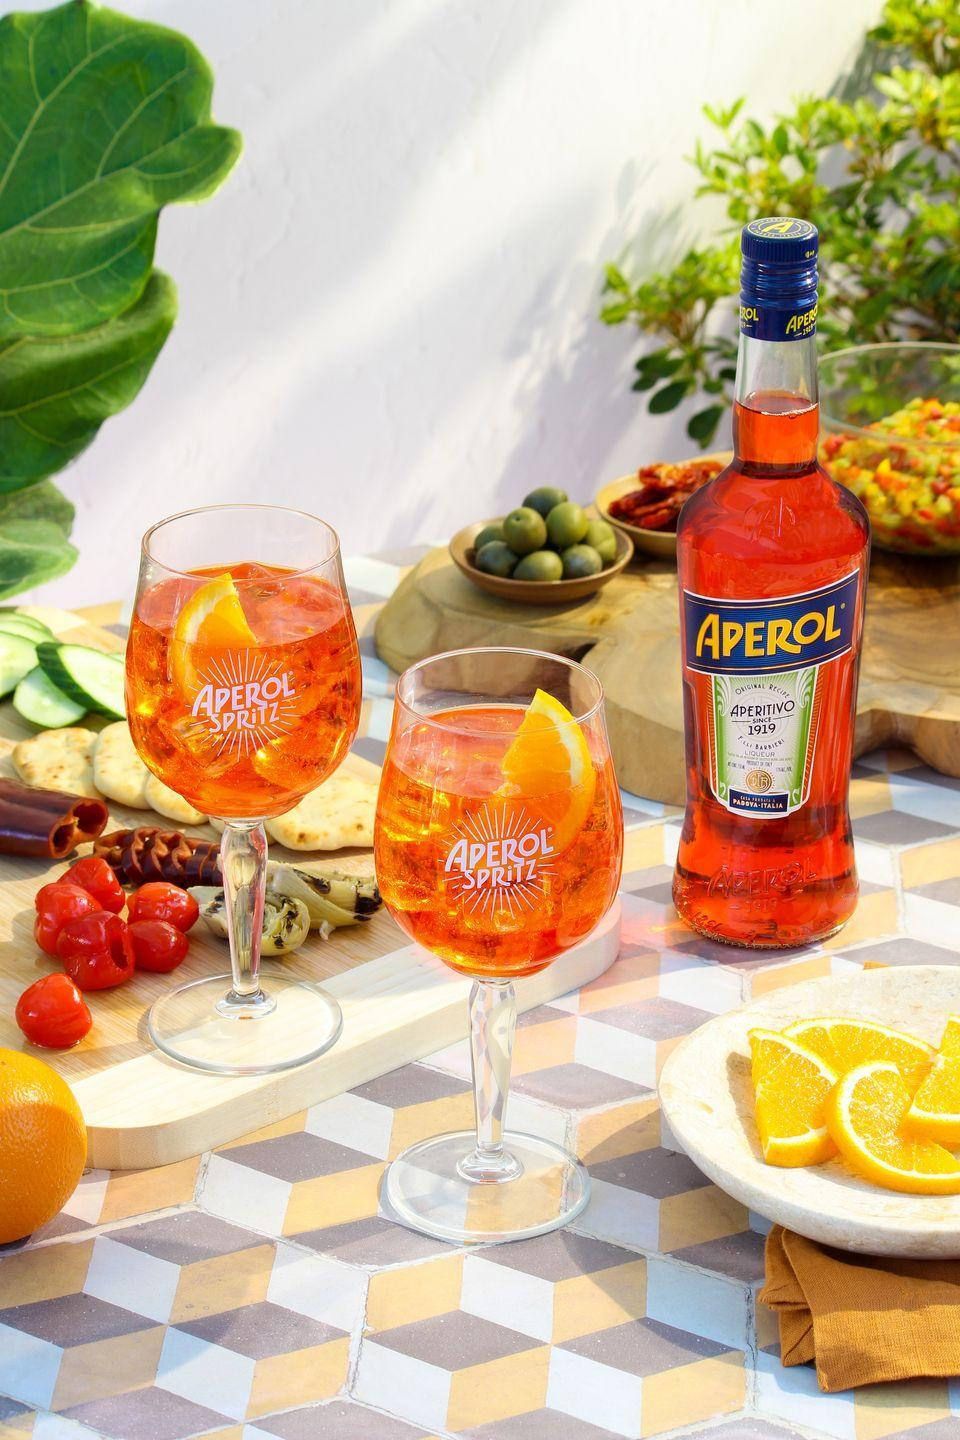 <p>This wildly popular drink can be pretty divisive, as most imbibers either love it or love to hate it. It's a bittersweet, bubbly beverage that is low in alcohol and high in enlivening a summer afternoon.</p><p><strong>Ingredients</strong></p><p>Ice cubes </p><p> Aperol </p><p> Prosecco</p><p>Soda, served from syphon or chilled bottle </p><p>Orange slice, for garnish.</p><p><strong>Directions</strong></p><p>In a glass full of ice, combine Prosecco and Aperol in equal parts. Add a splash of soda and garnish with an orange slice.</p>